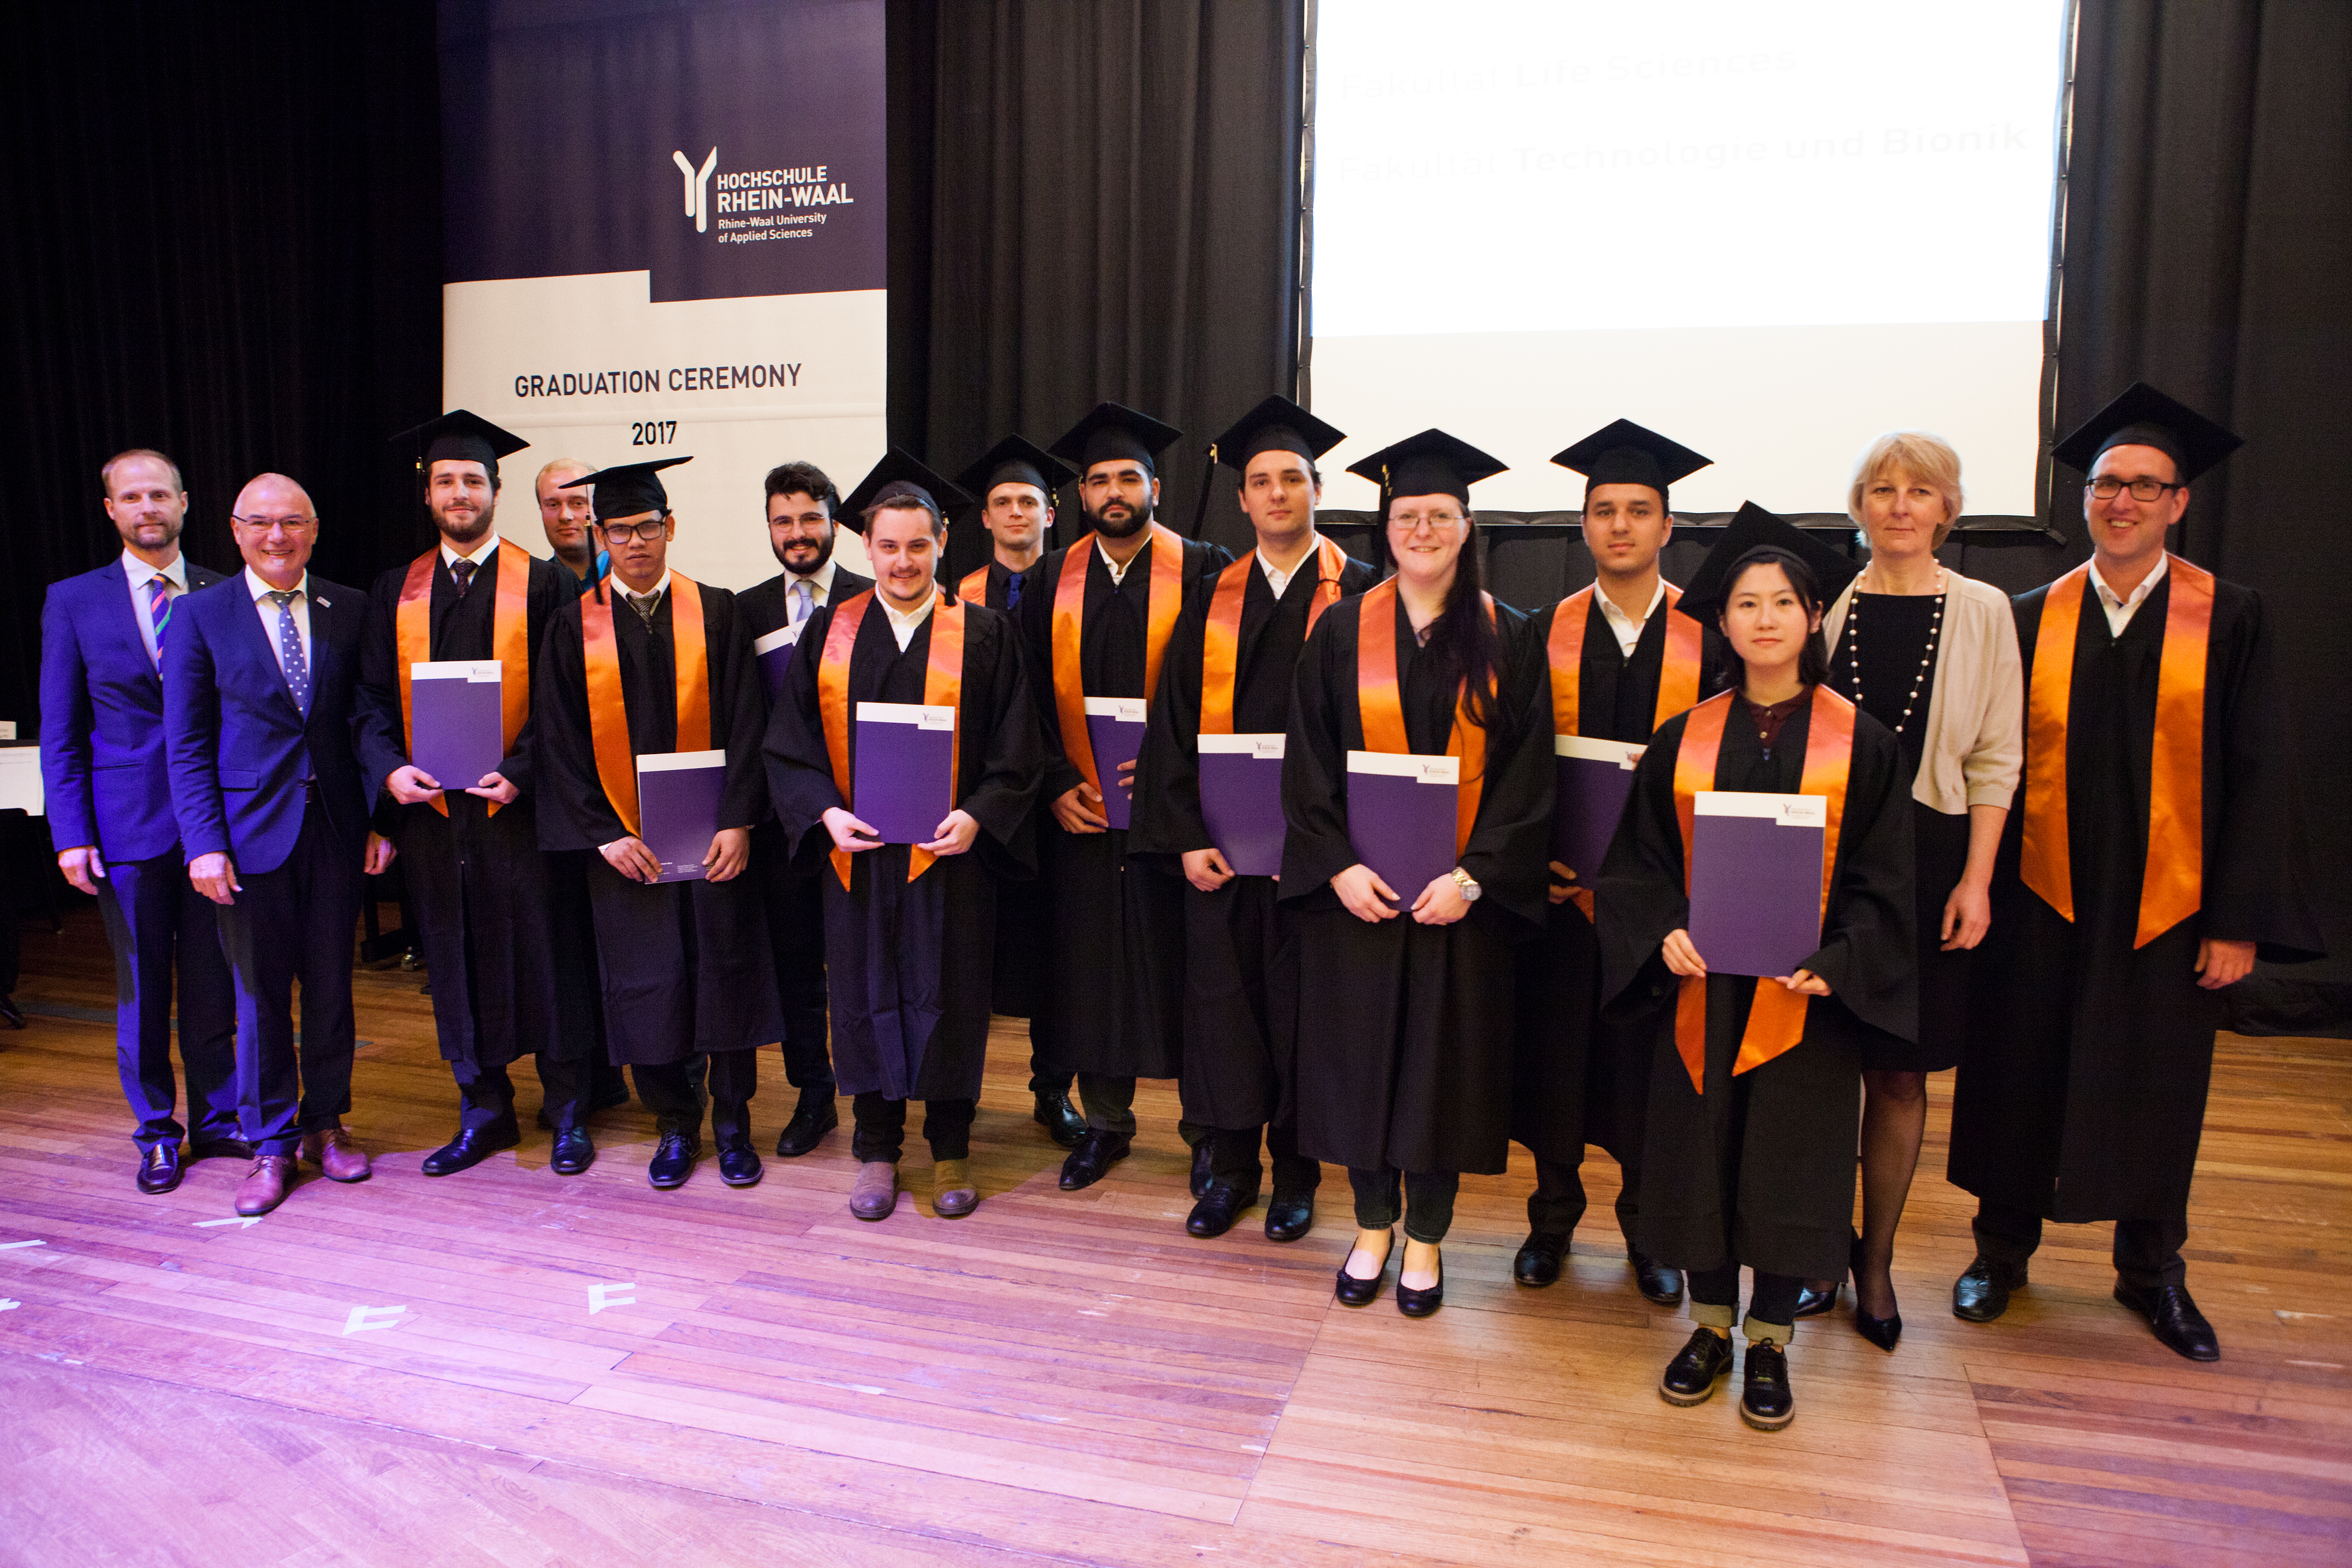 Graduation Ceremony Reception: Graduation Ceremony 2017 At Rhine-Waal University Of